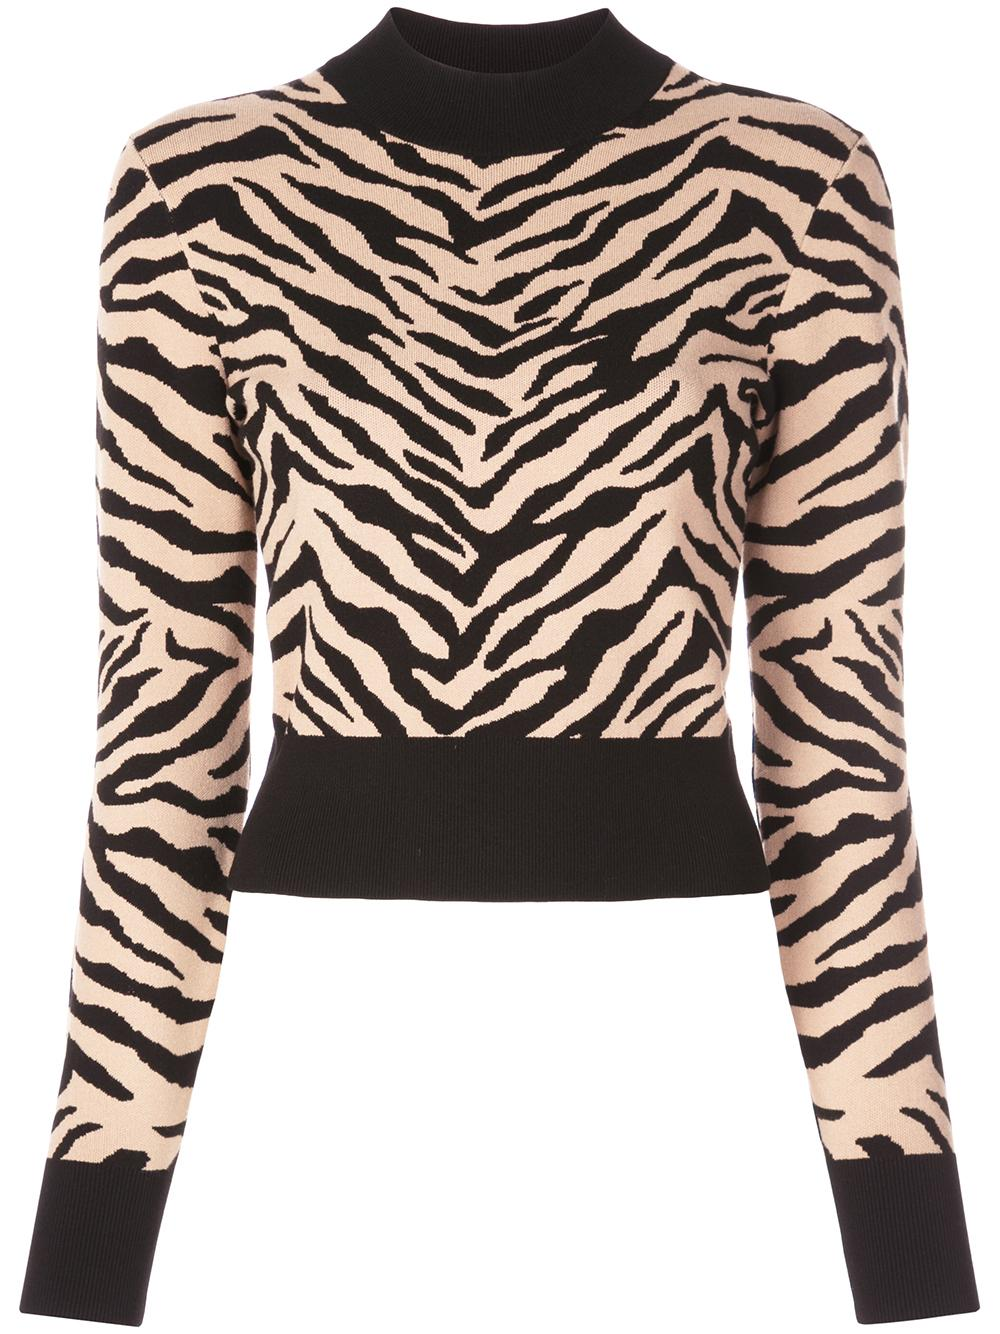 Lola Tiger Print Mock Neck Sweater